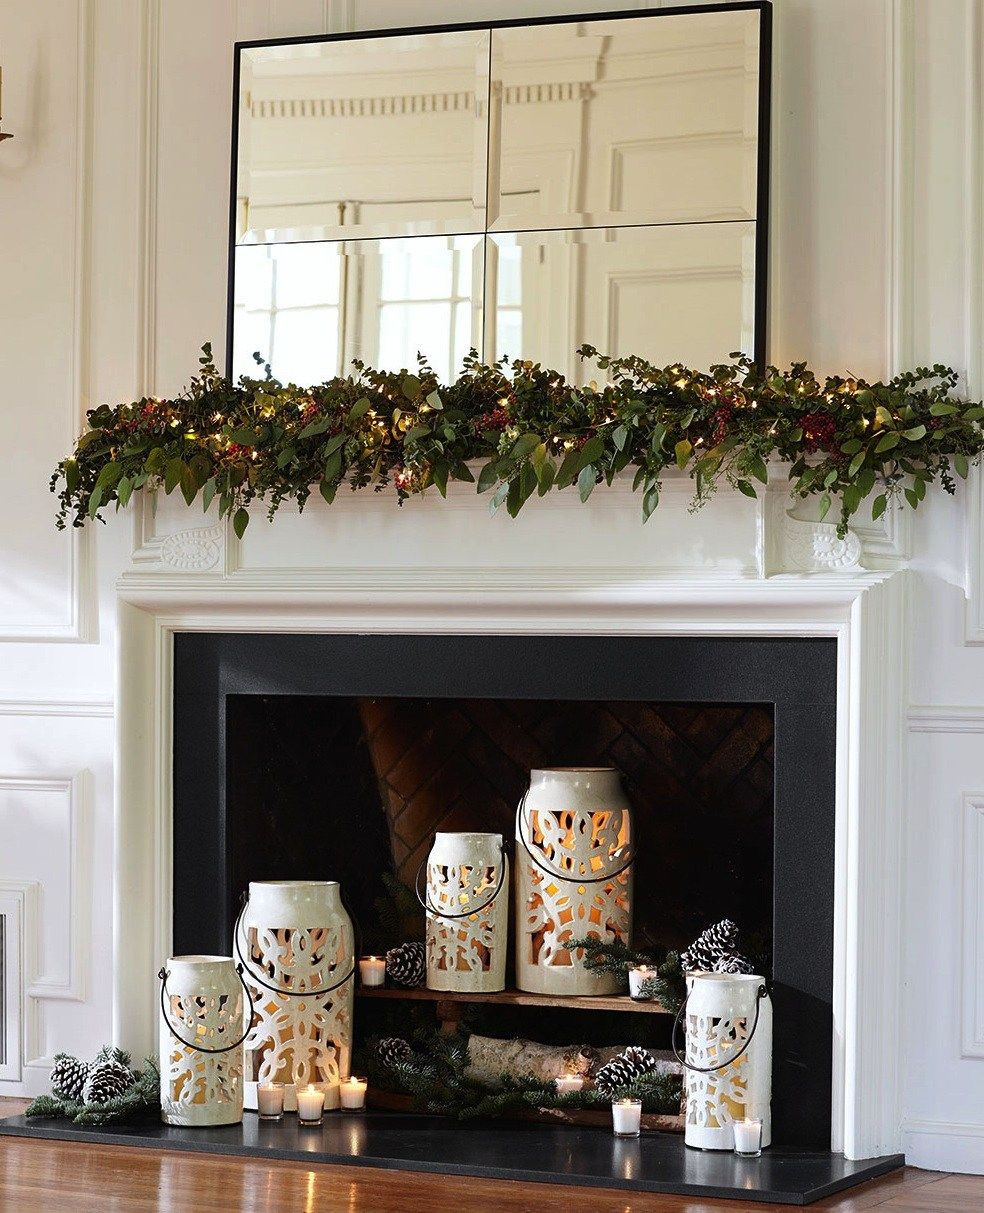 pottery barn christmas mantel on professional tips for decorating your holiday mantel pottery barn candles in fireplace candle decor holiday fireplace pinterest